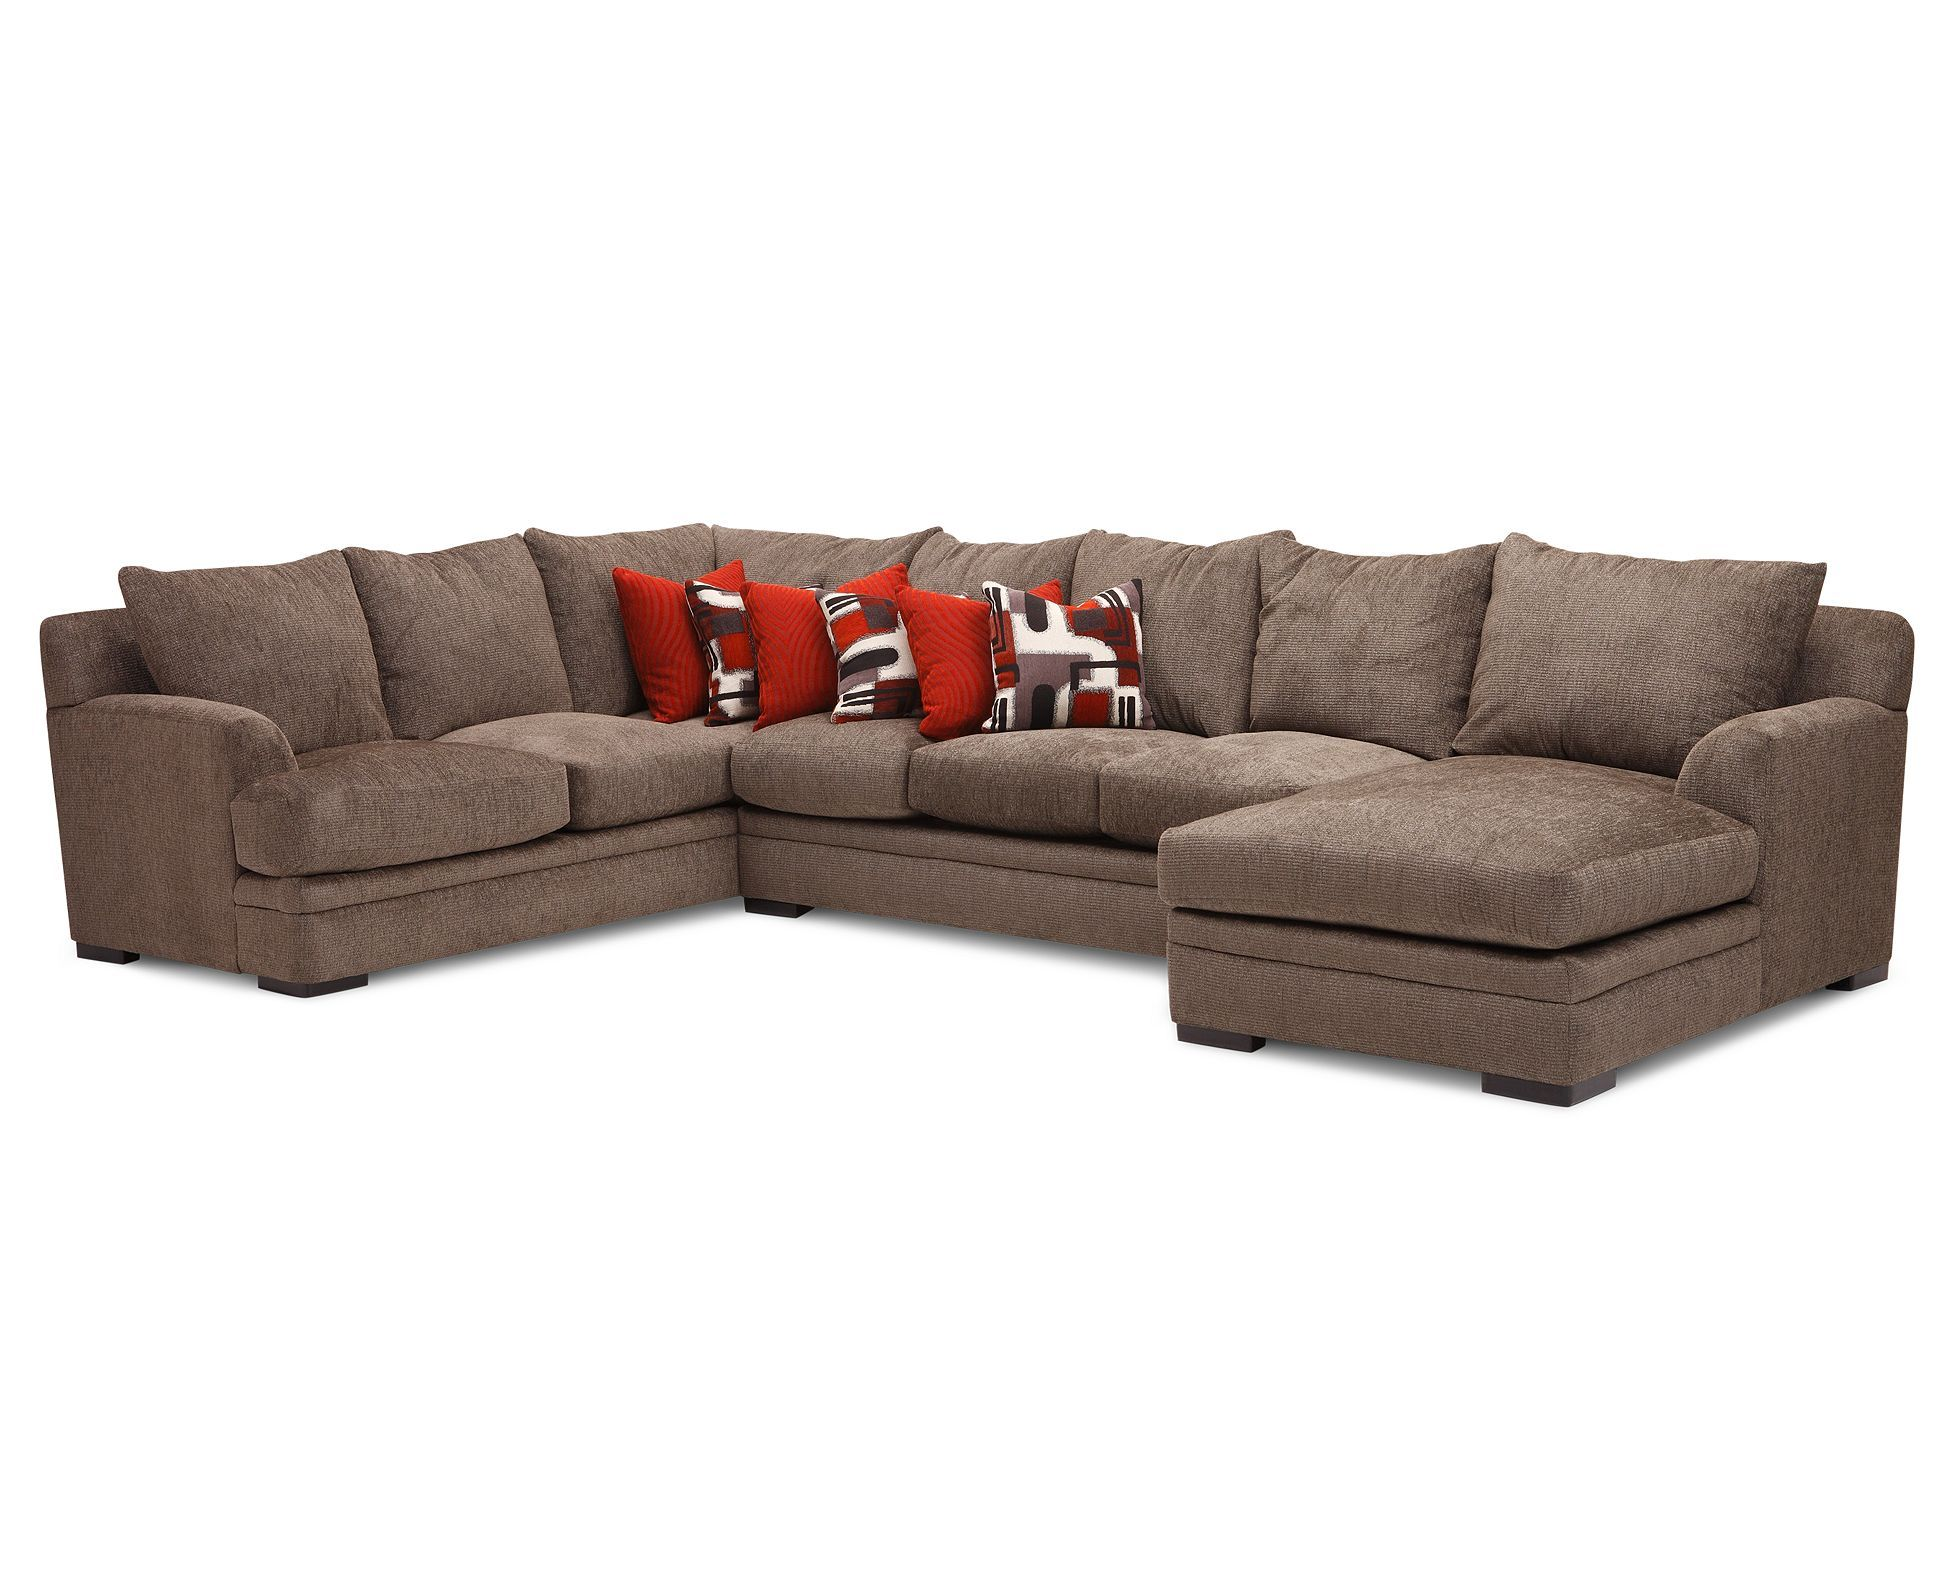 Delicieux Alba 3 Pc. Sectional Sofa Mart 1 844 763 6278